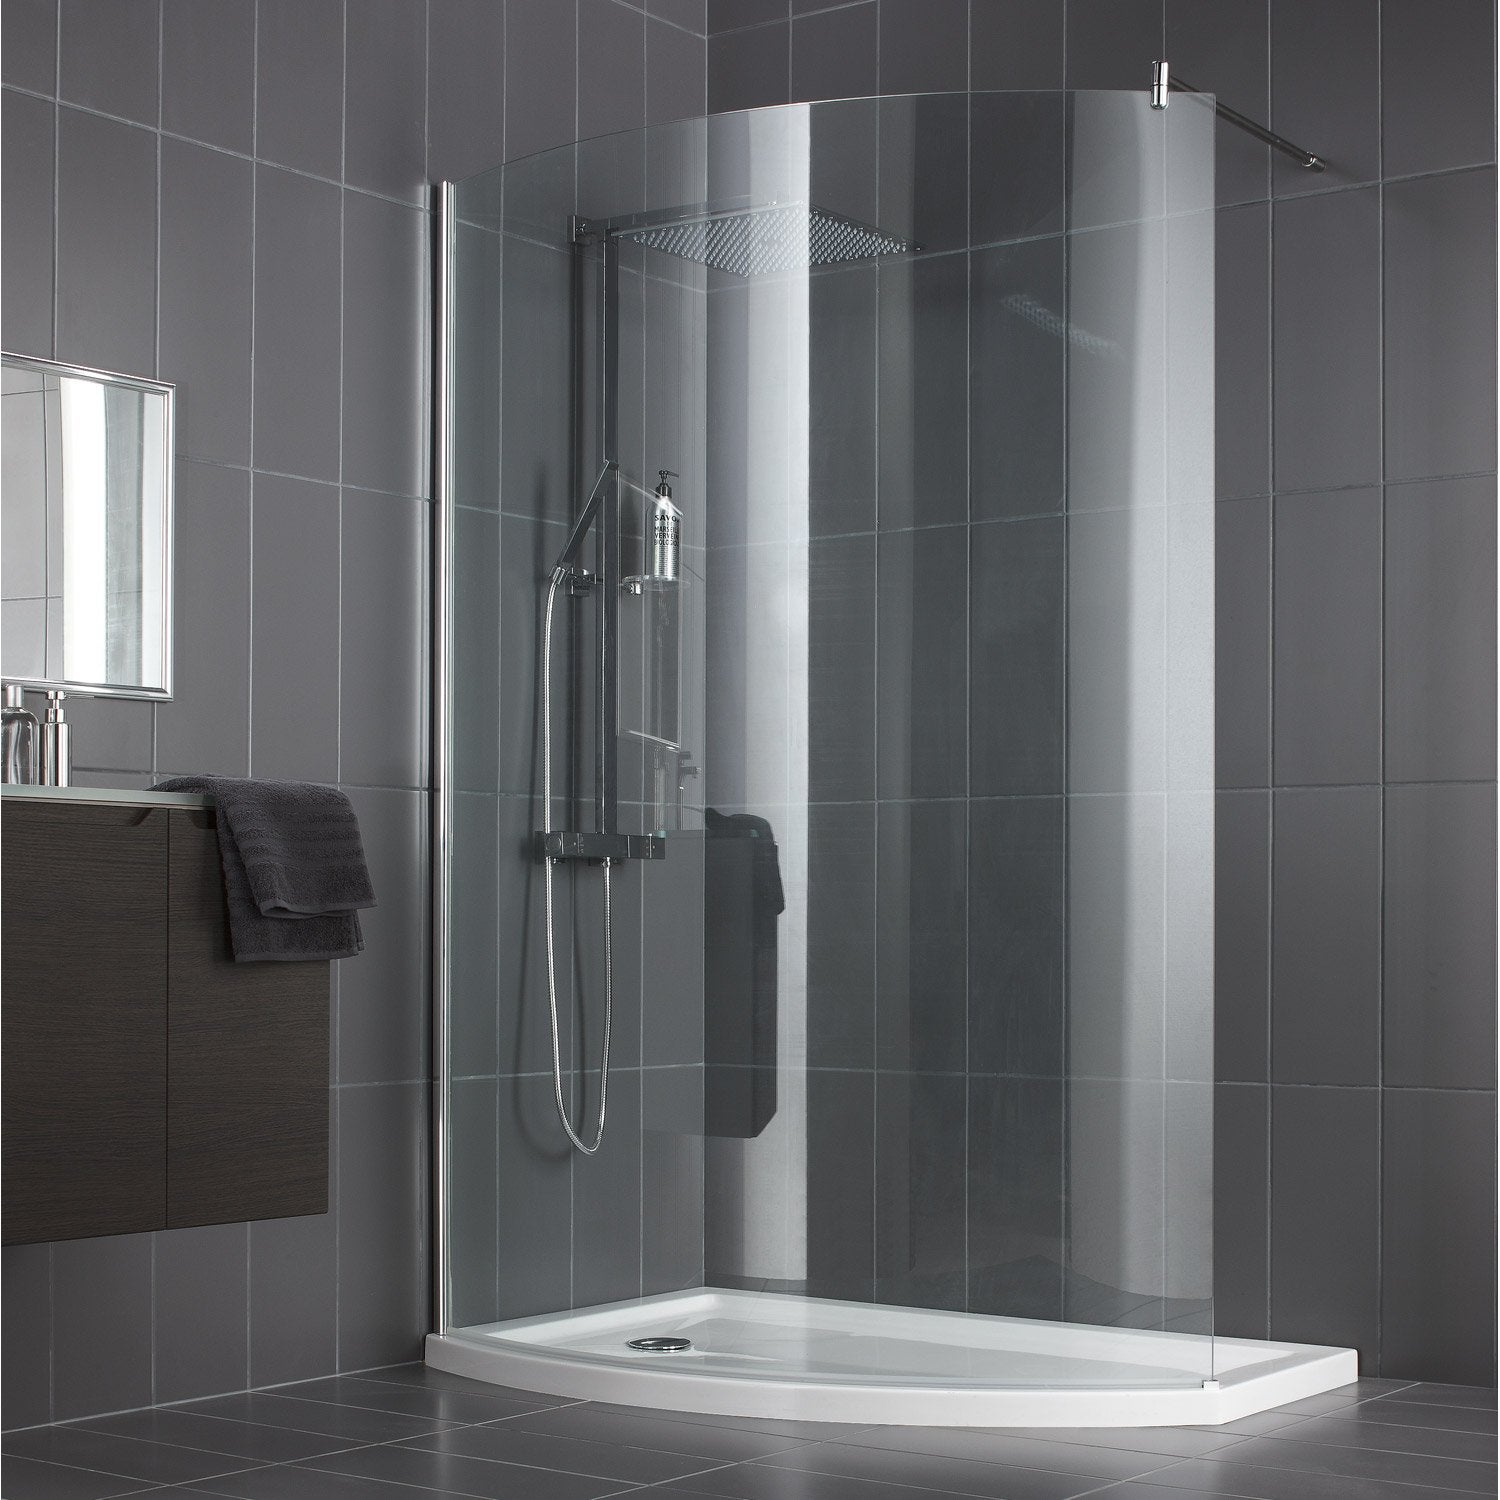 paroi de douche l 39 italienne look profil chrom l 140cm leroy merlin. Black Bedroom Furniture Sets. Home Design Ideas